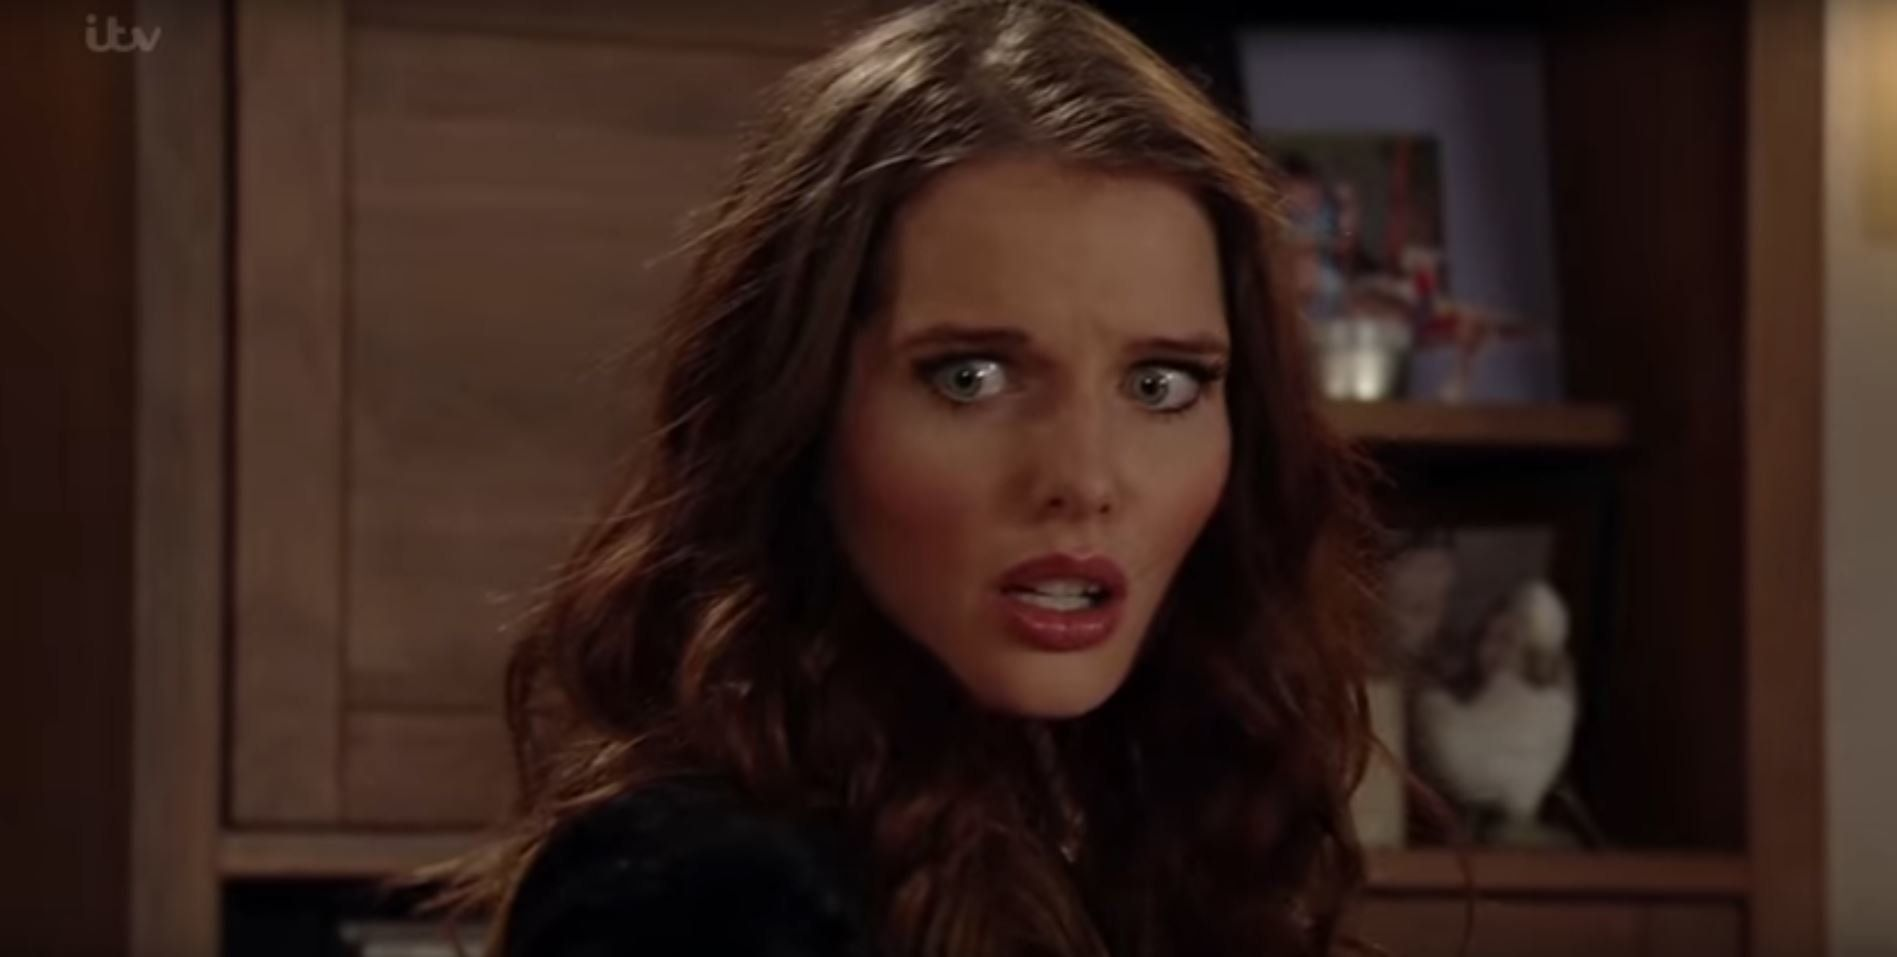 'Coronation Street' Fans Divided Over Helen Flanagan's Return As Rosie